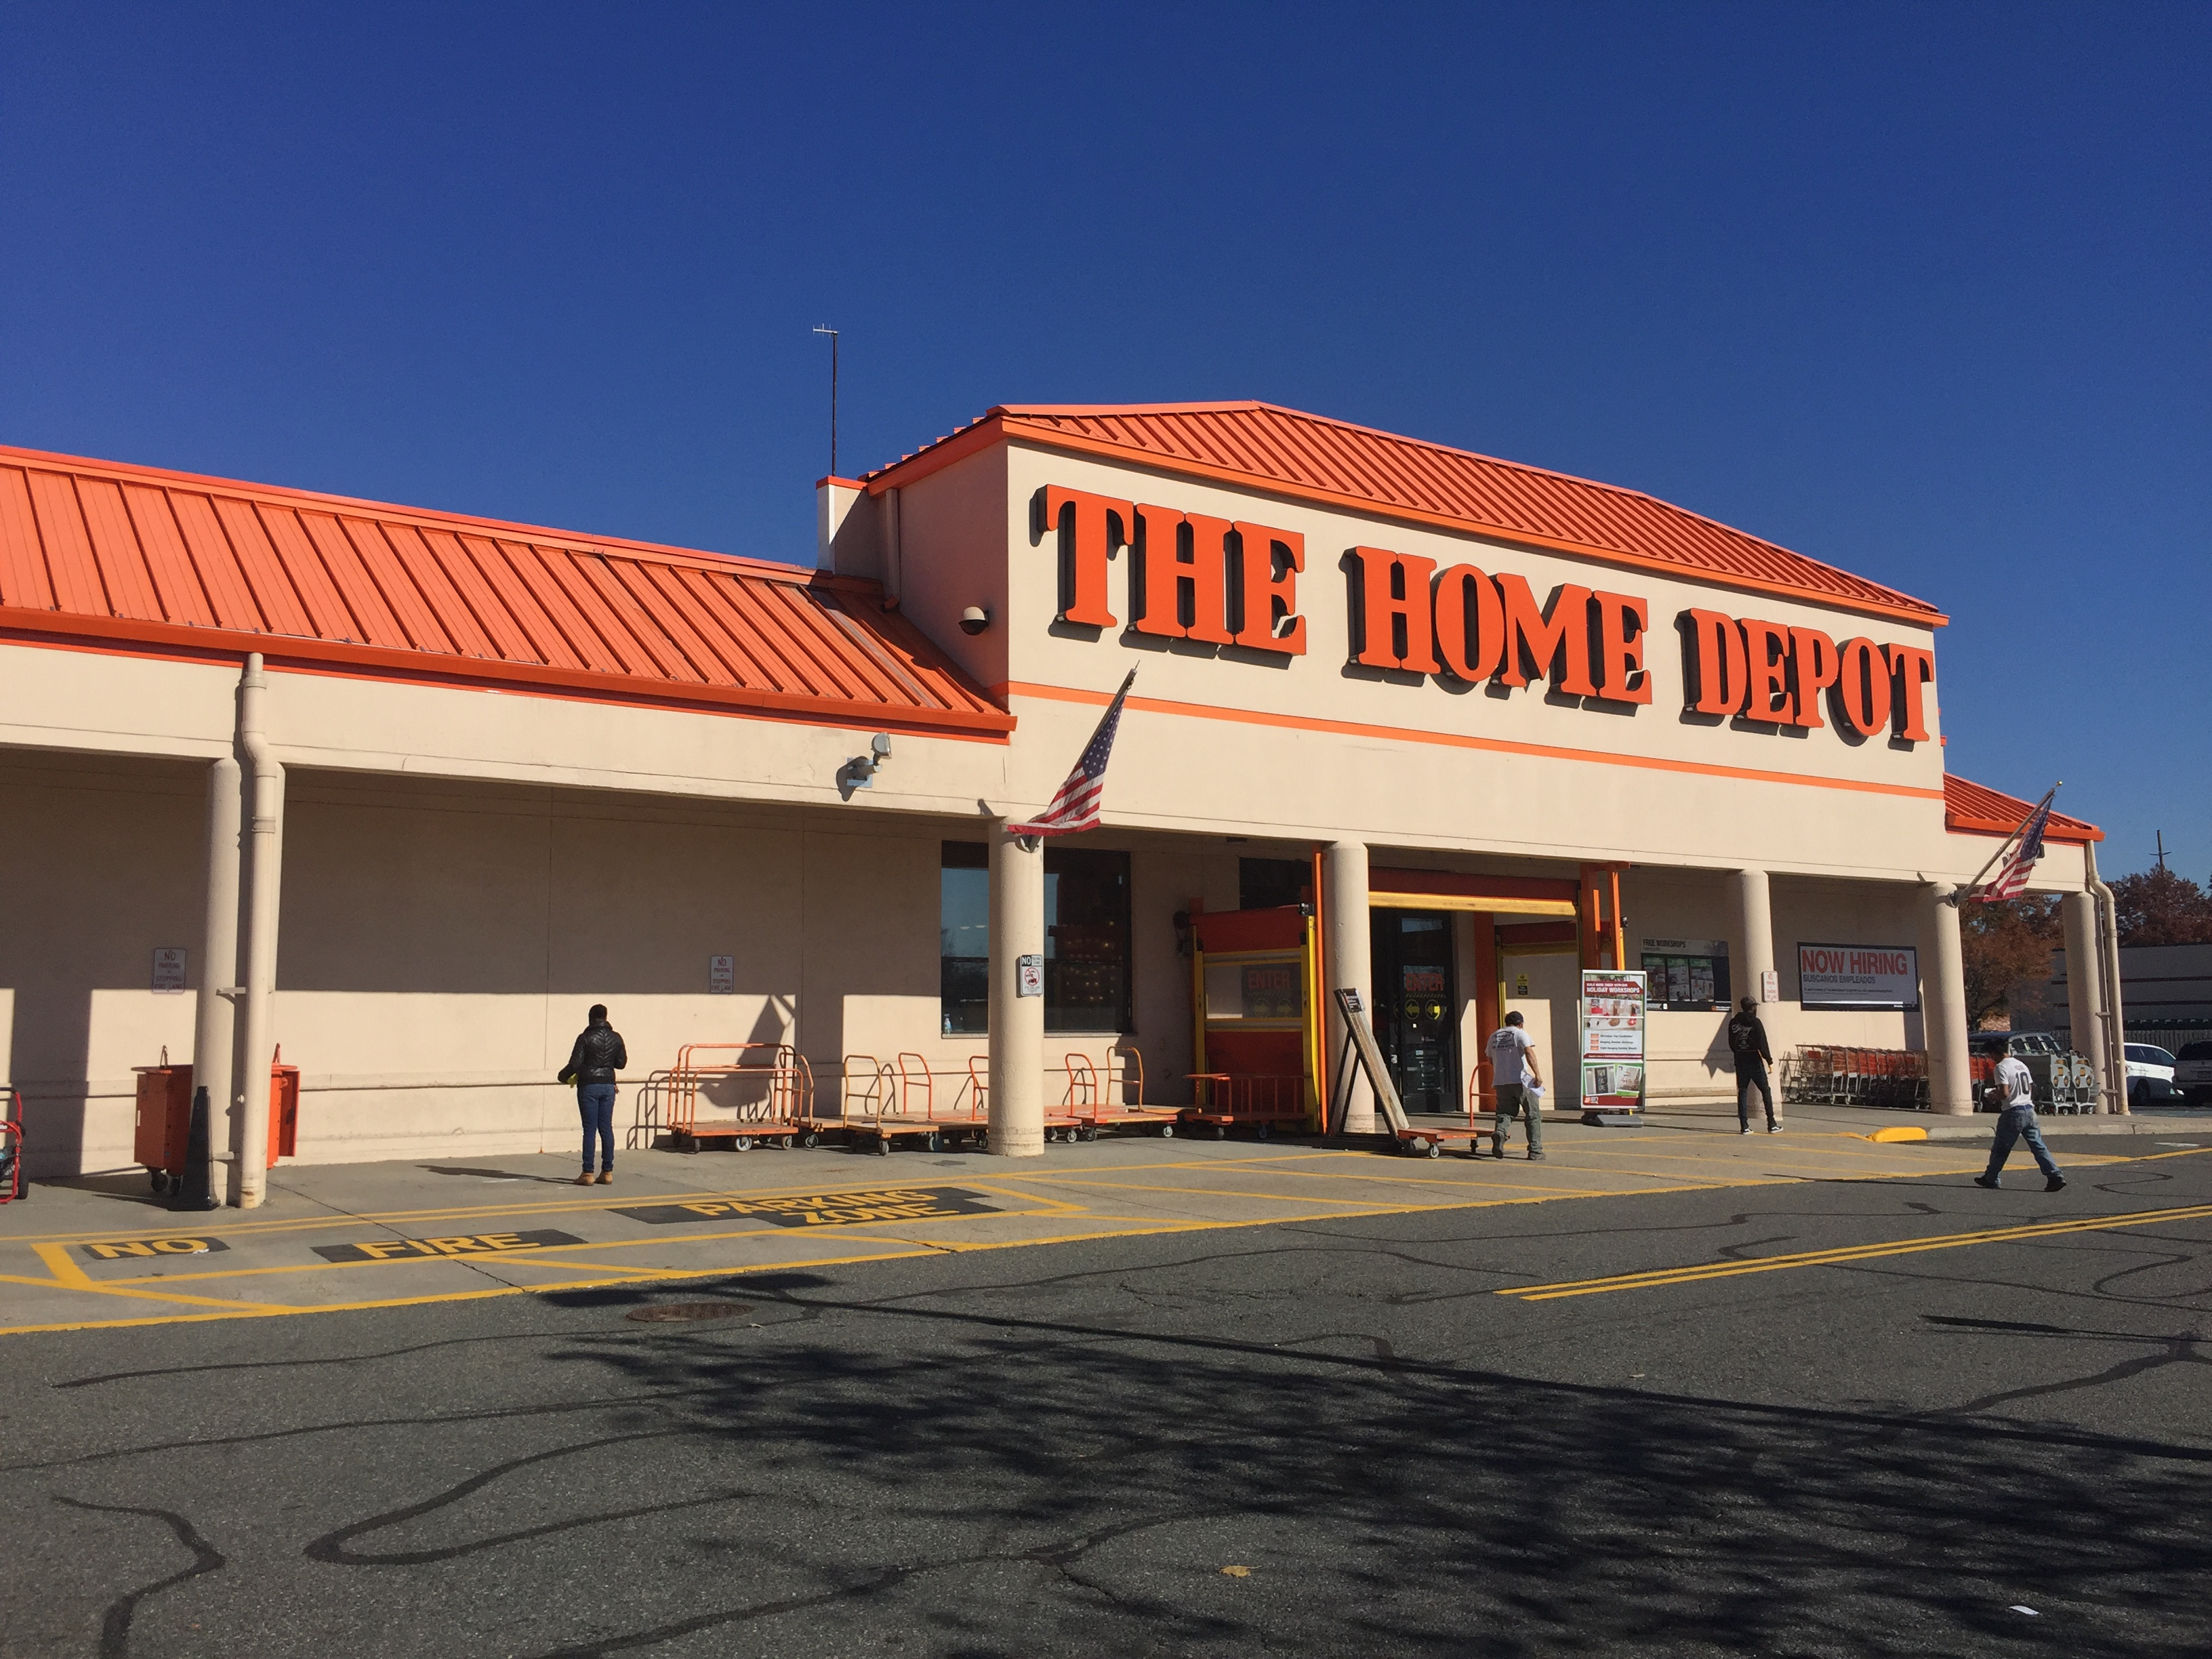 The home depot in east hanover nj 07936 for The hanover house